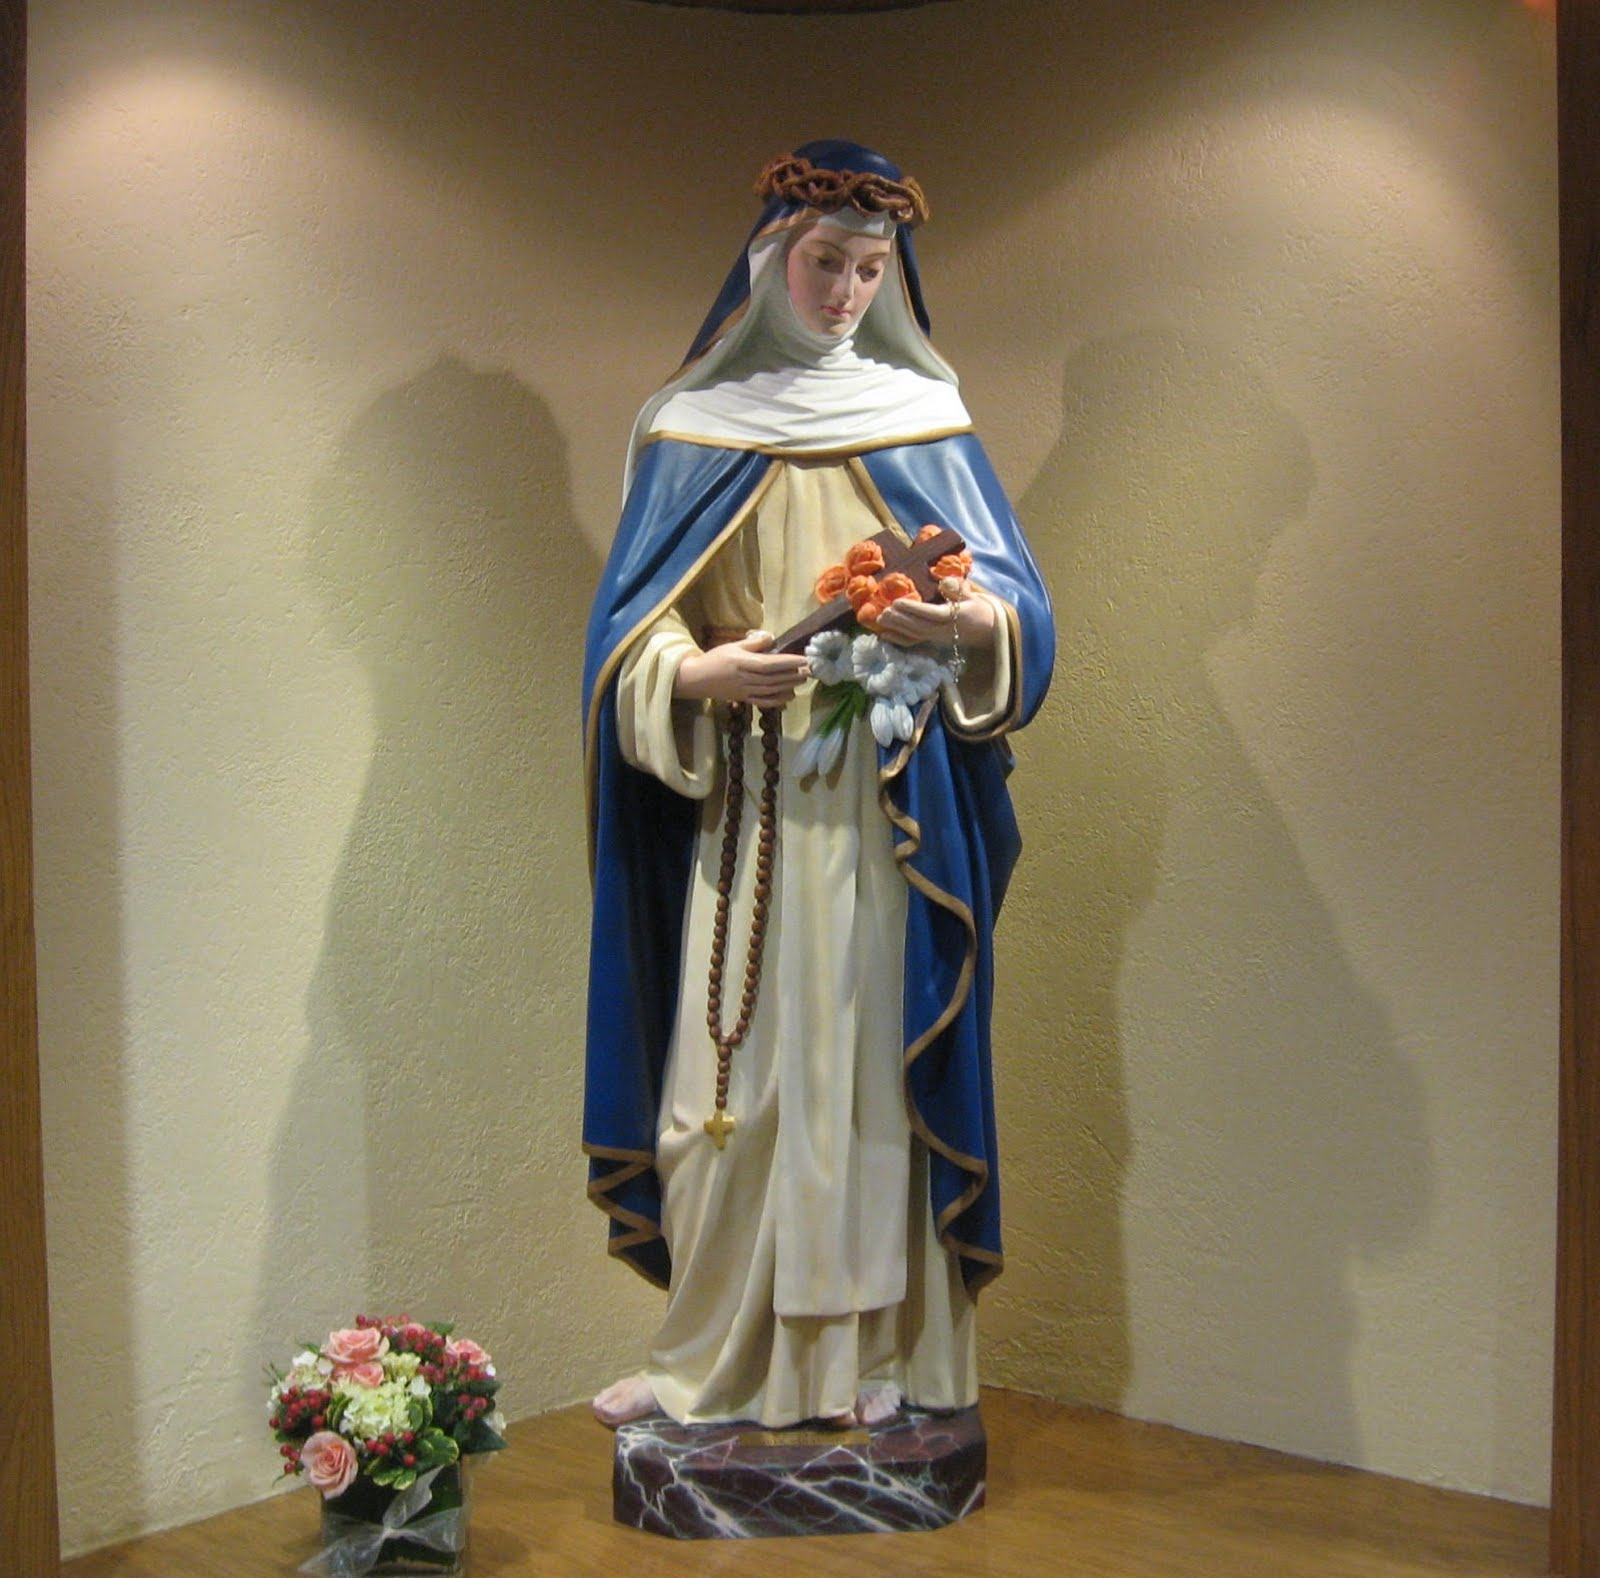 saint rose August 23 a member of the third order of saint dominic, saint rose of lima lived a life of penance and holiness at home under the disapproving eyes of her pare.